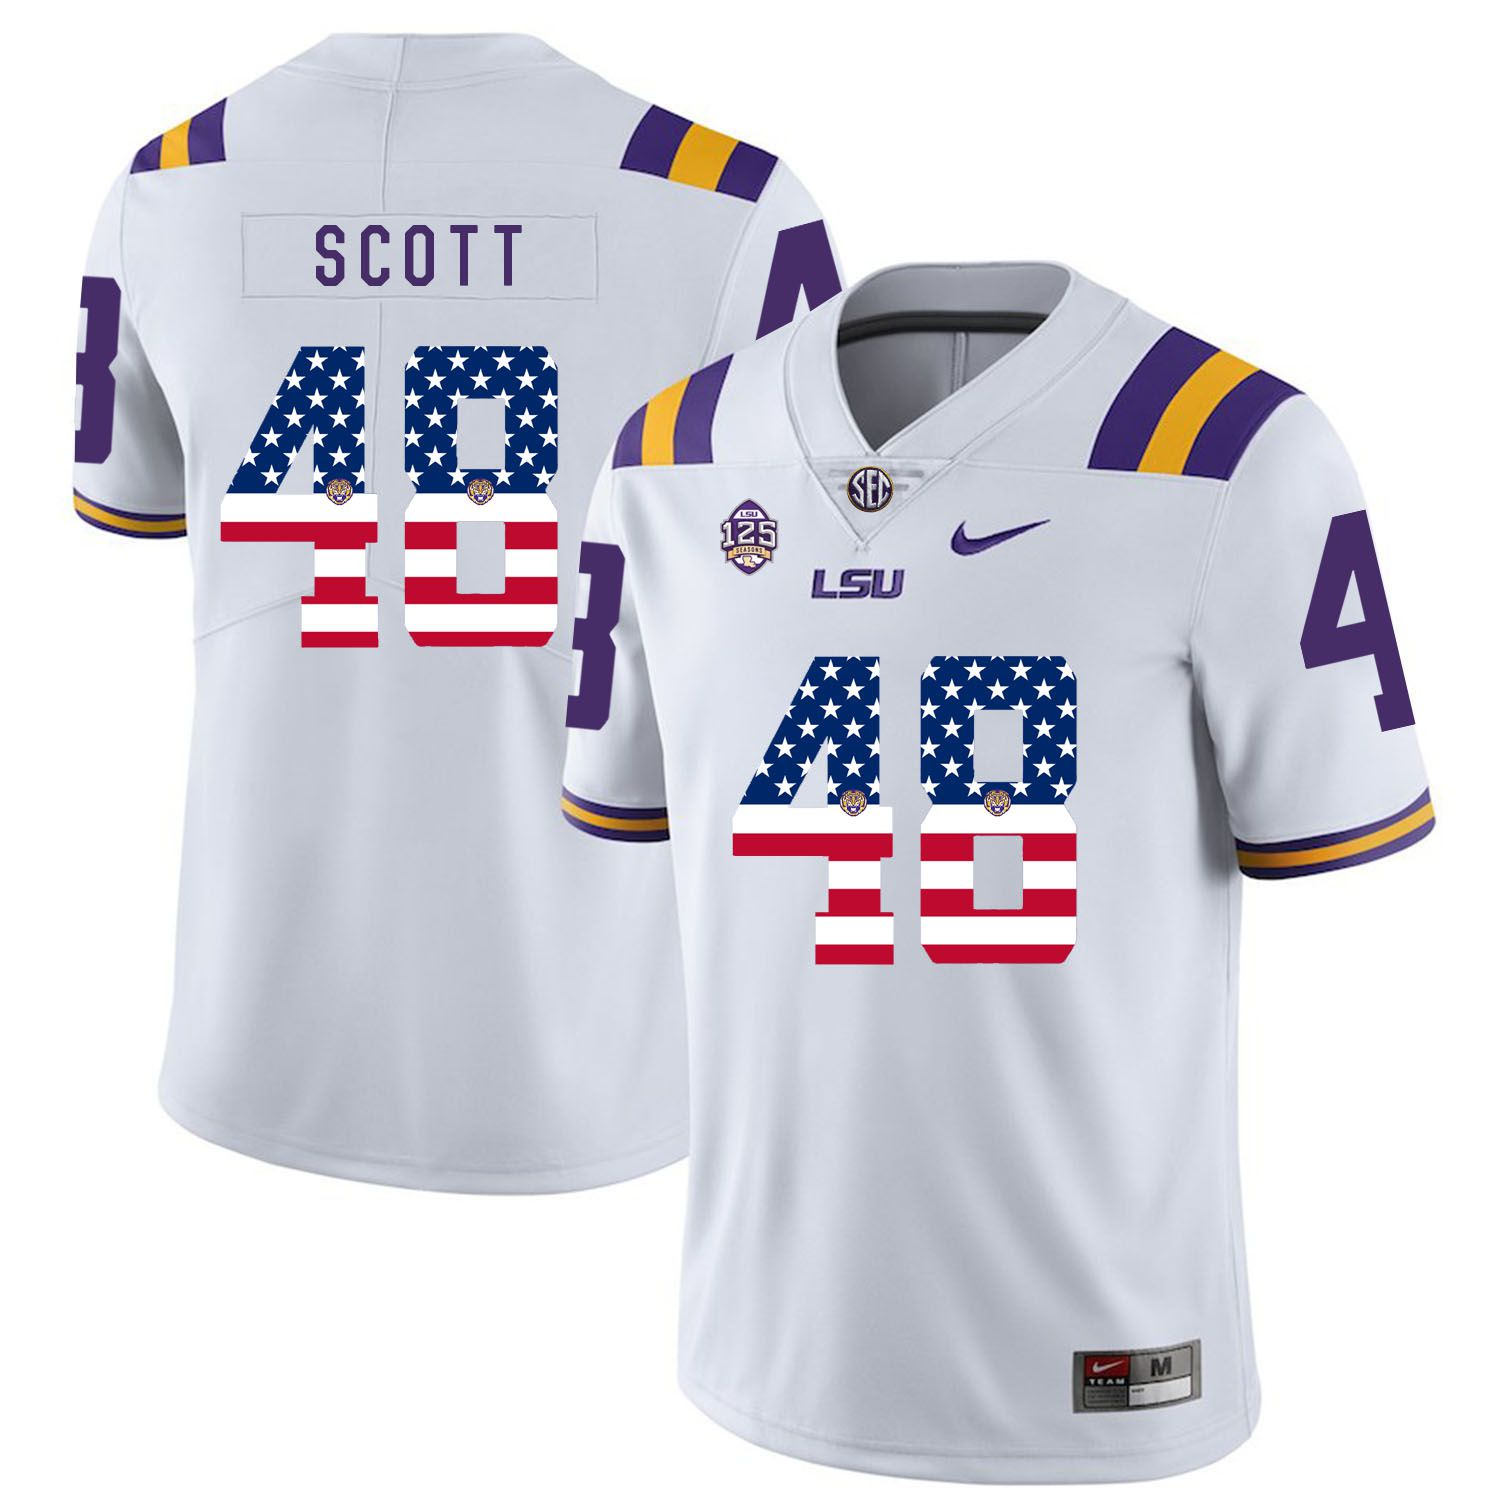 Men LSU Tigers 48 Scott White Flag Customized NCAA Jerseys